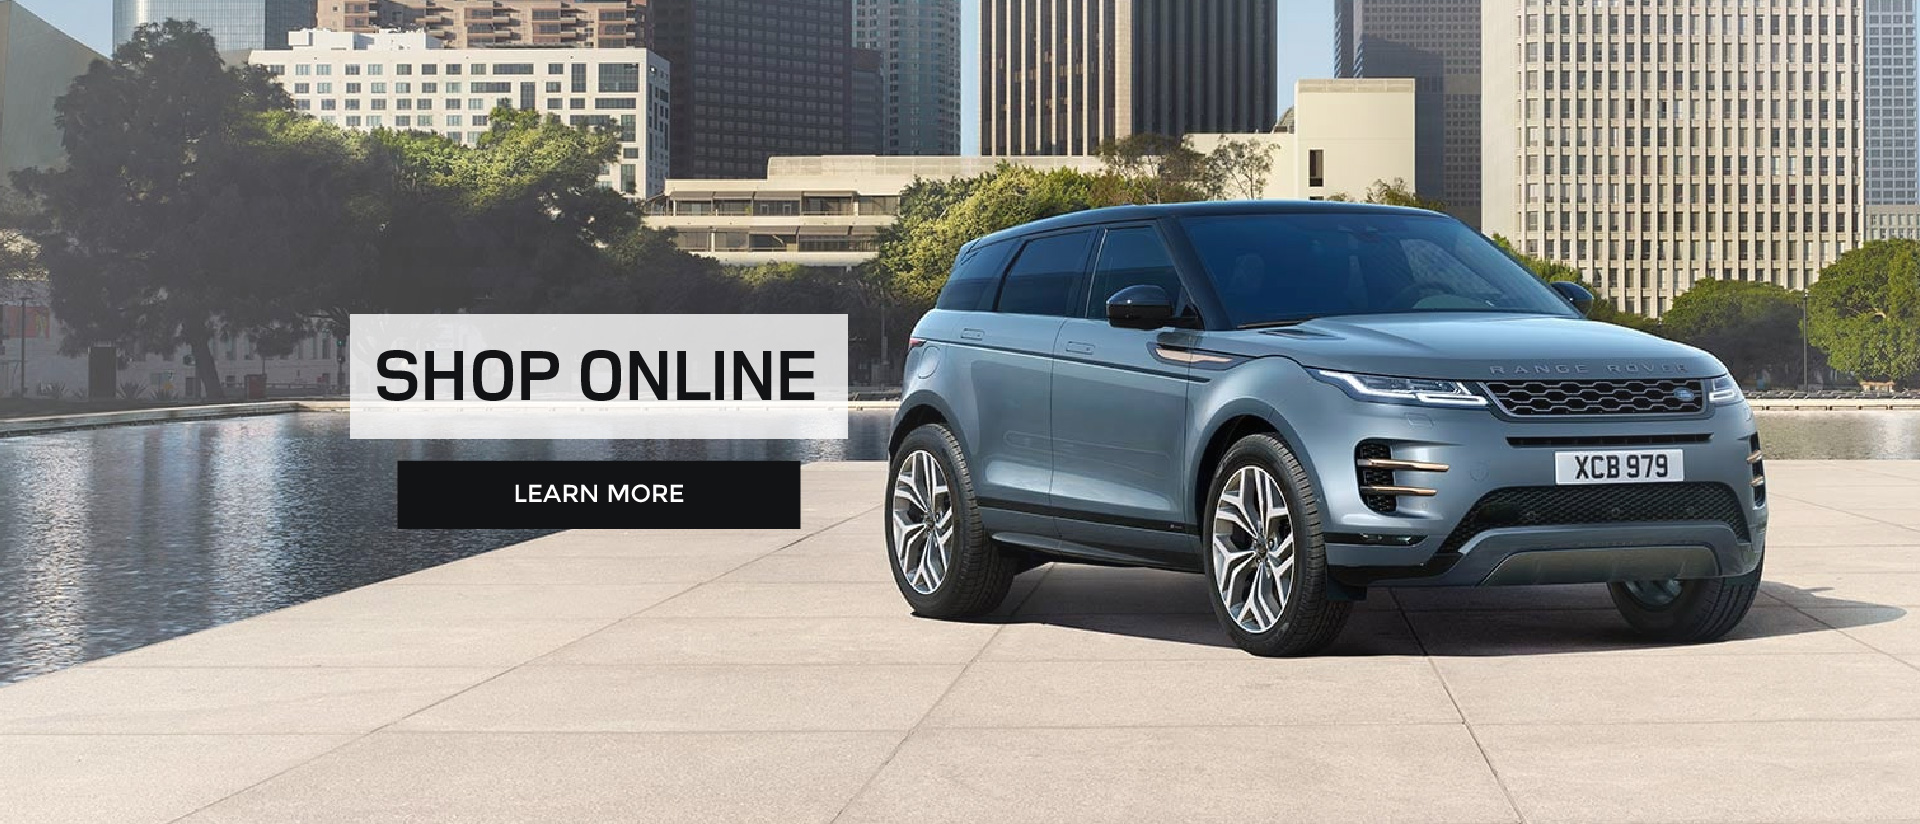 553068382 Coventry North Land Rover Shop Online 21x9 01